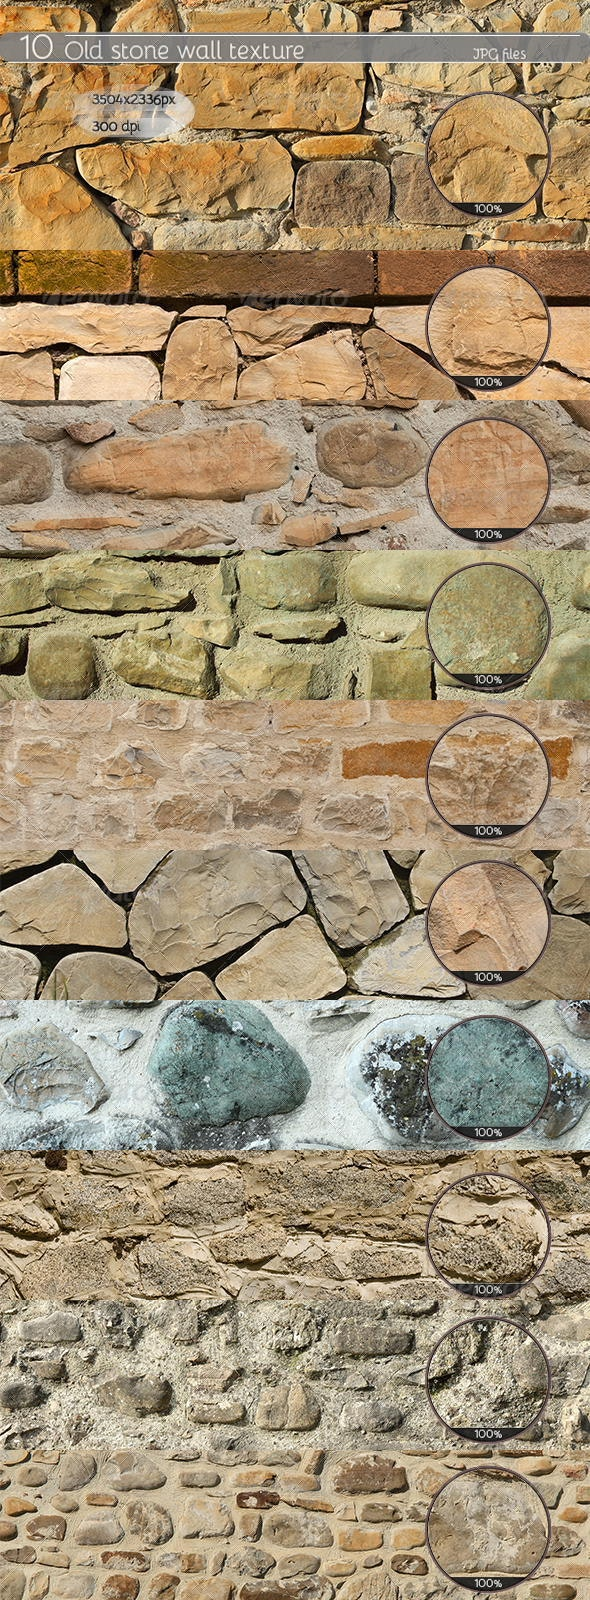 10 Old stone Wall Textures - Stone Textures